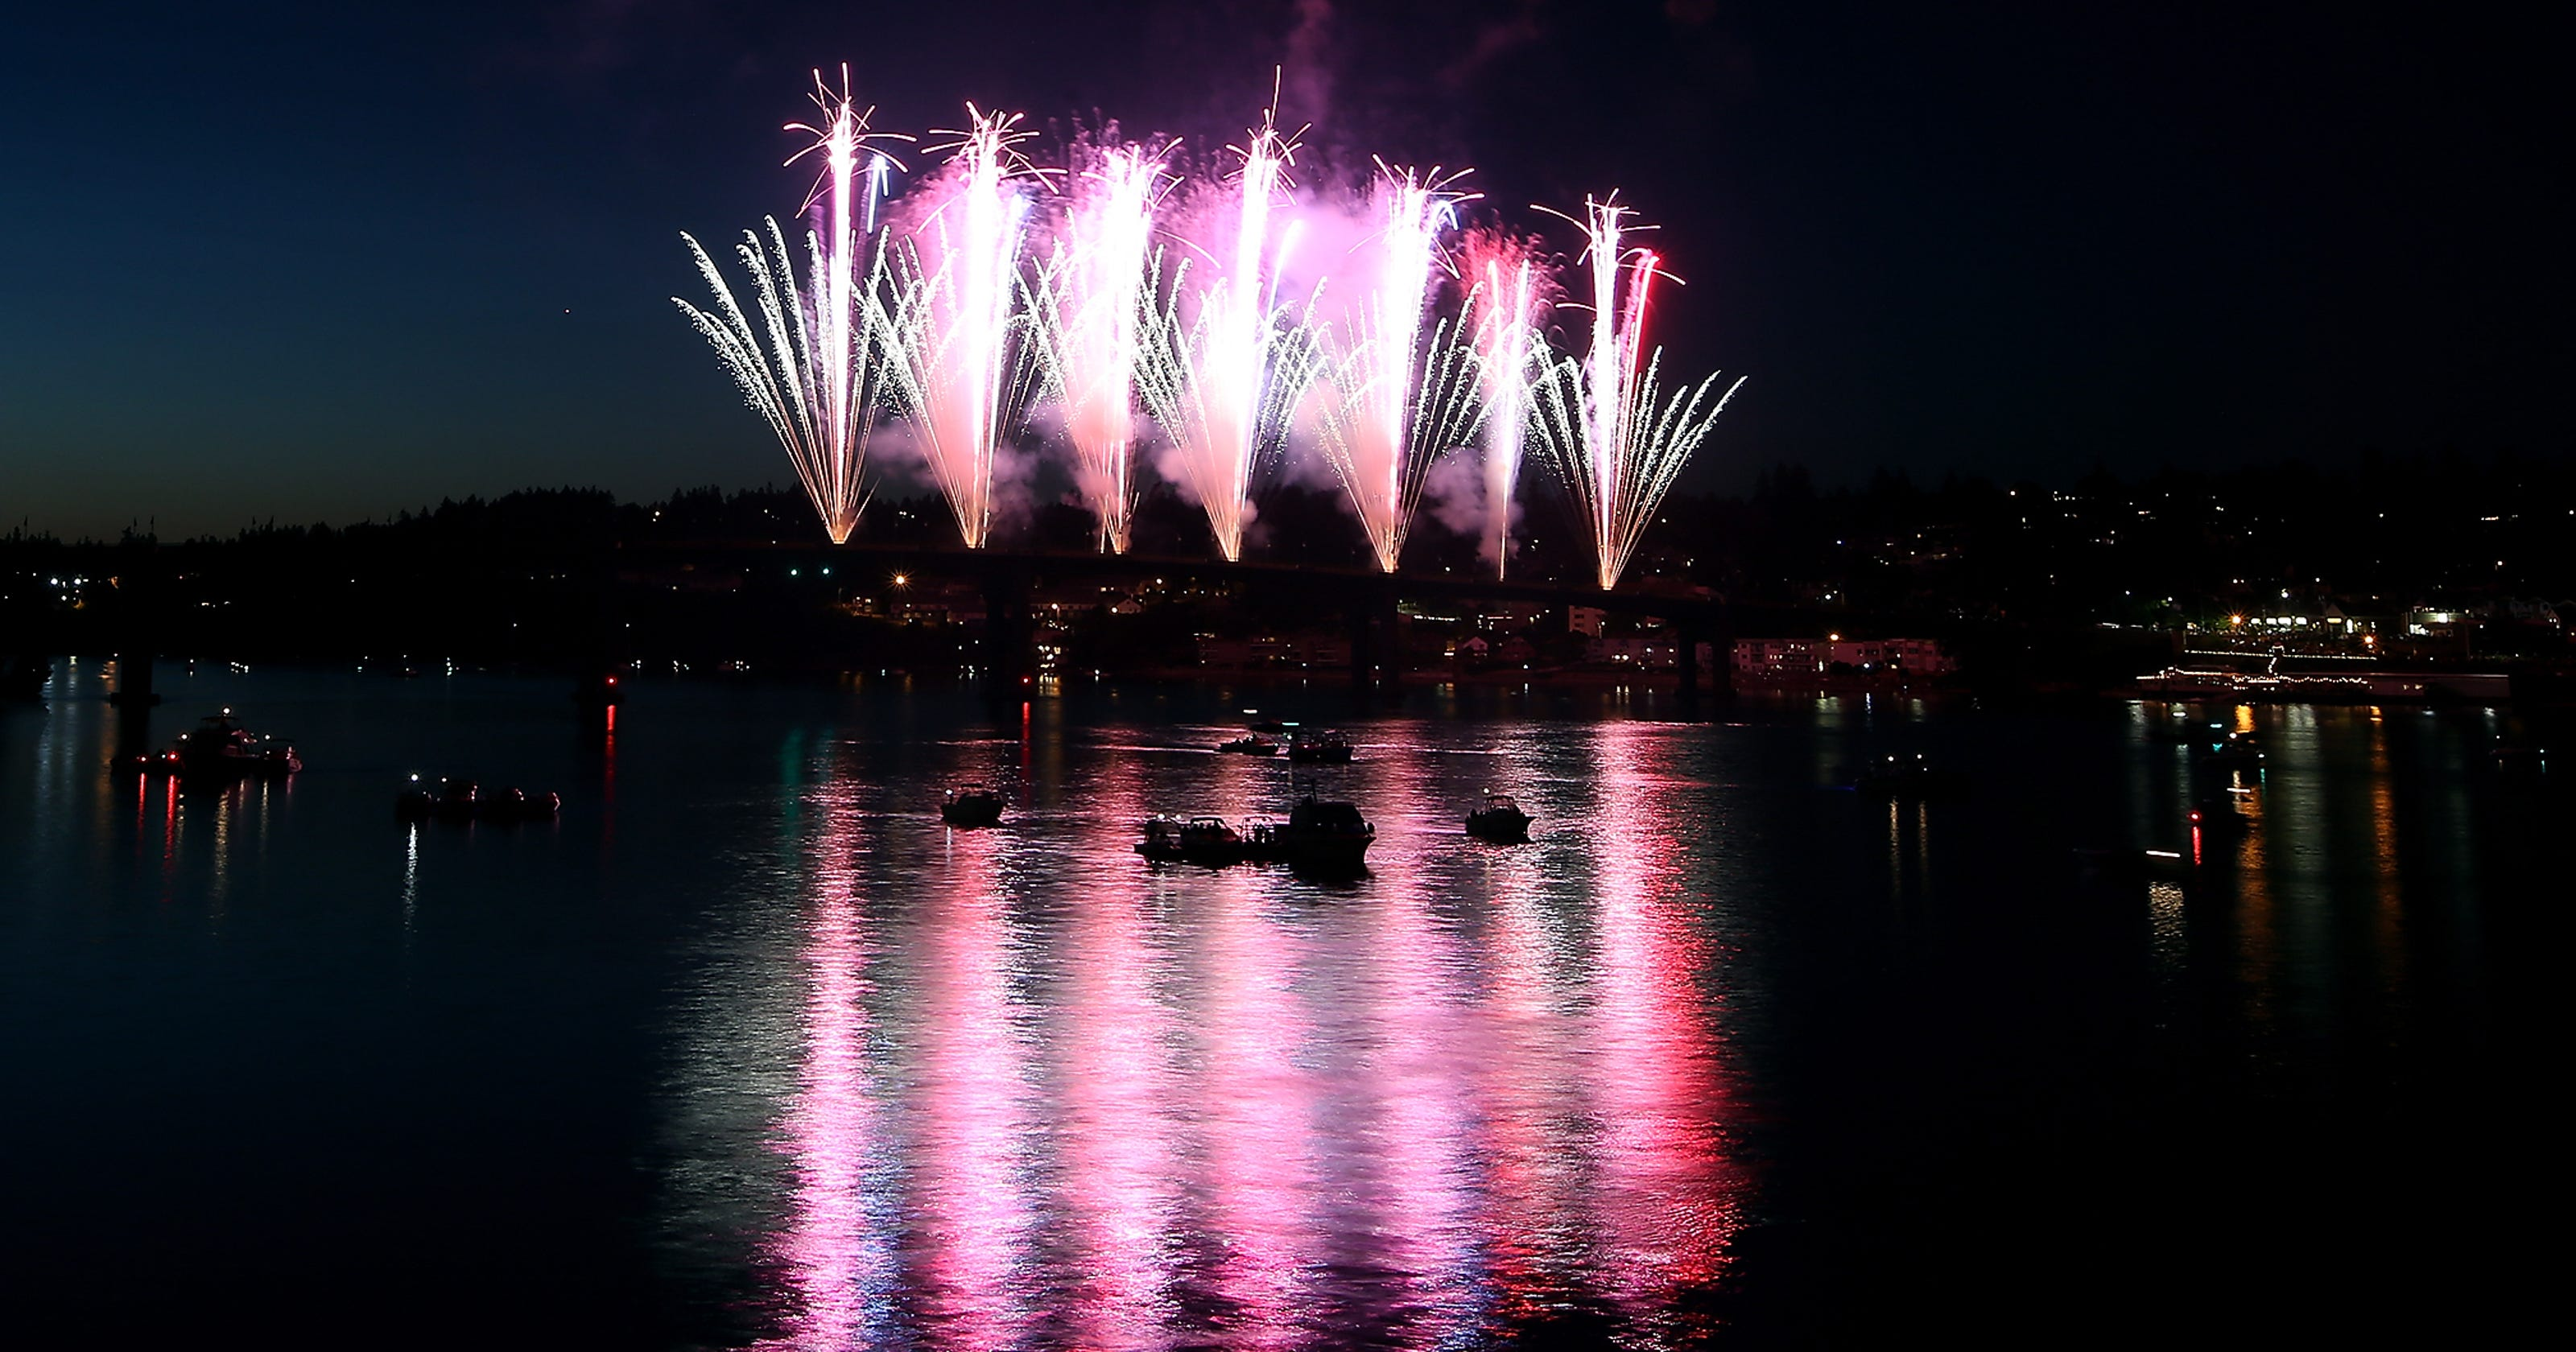 Kitsap County July 4th events